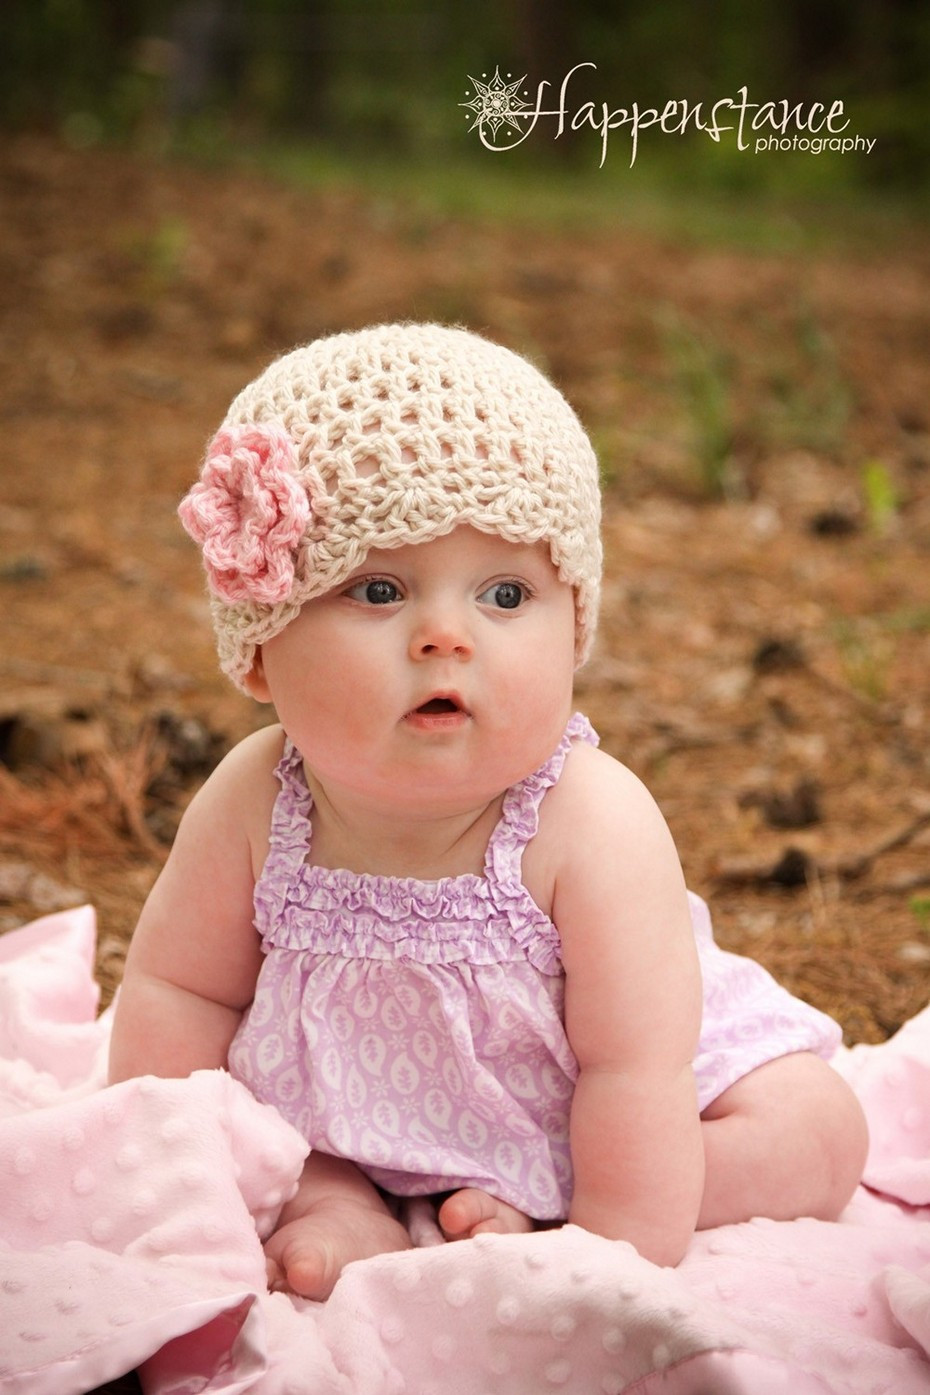 Crochet Baby Beanie Unique Crochet Newborn Hat with Beautiful Design Homestylediary Of Beautiful 46 Pictures Crochet Baby Beanie